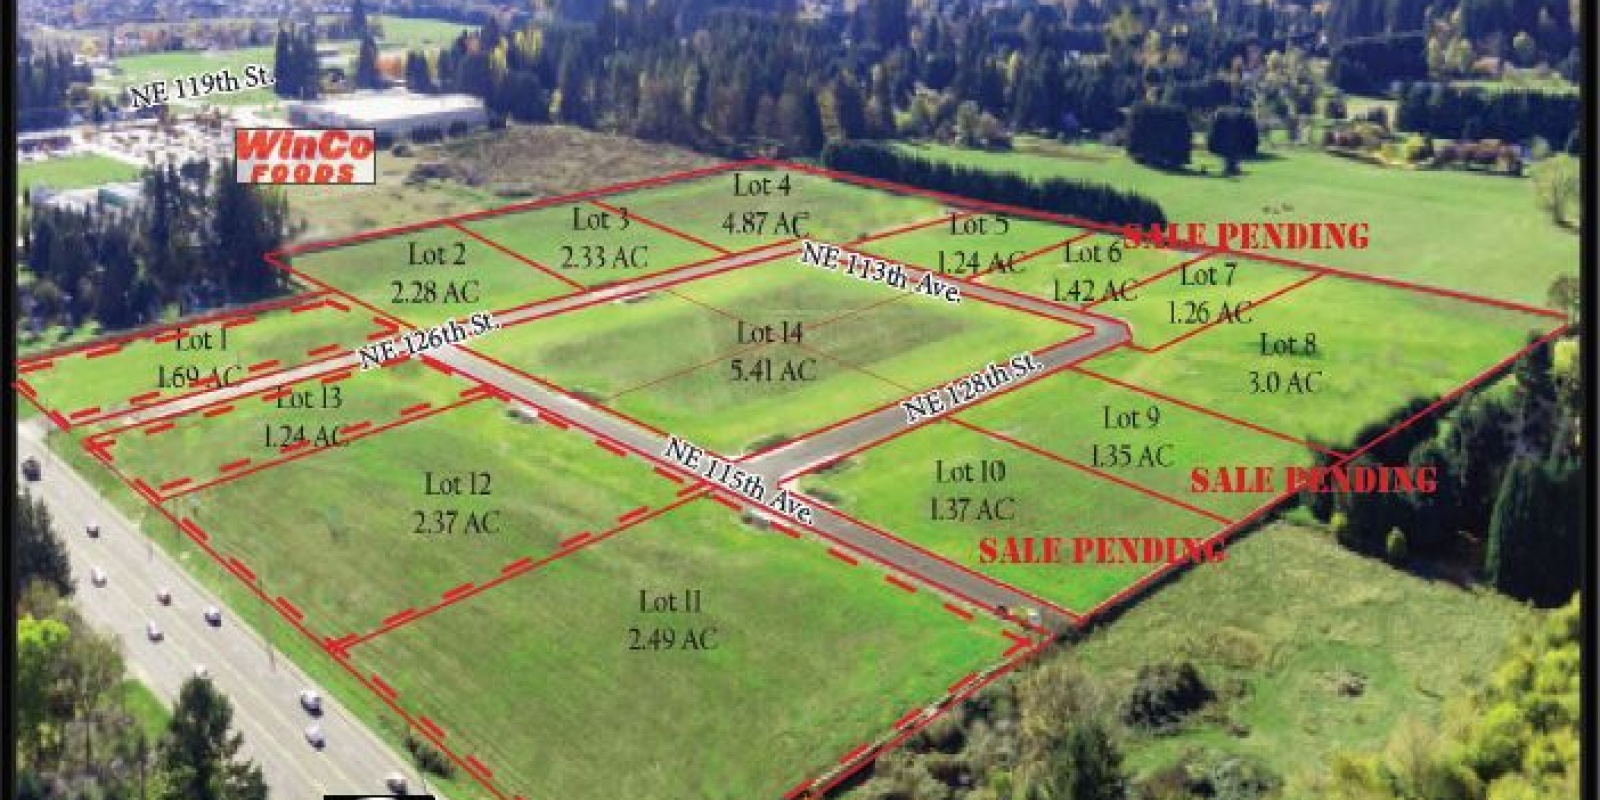 NE 117th Ave & 125th St. Vancouver, WA 98662, ,Land,For Sale,Glenwood Industrial Park,NE 117th Ave & 125th St. Vancouver, WA 98662,1251